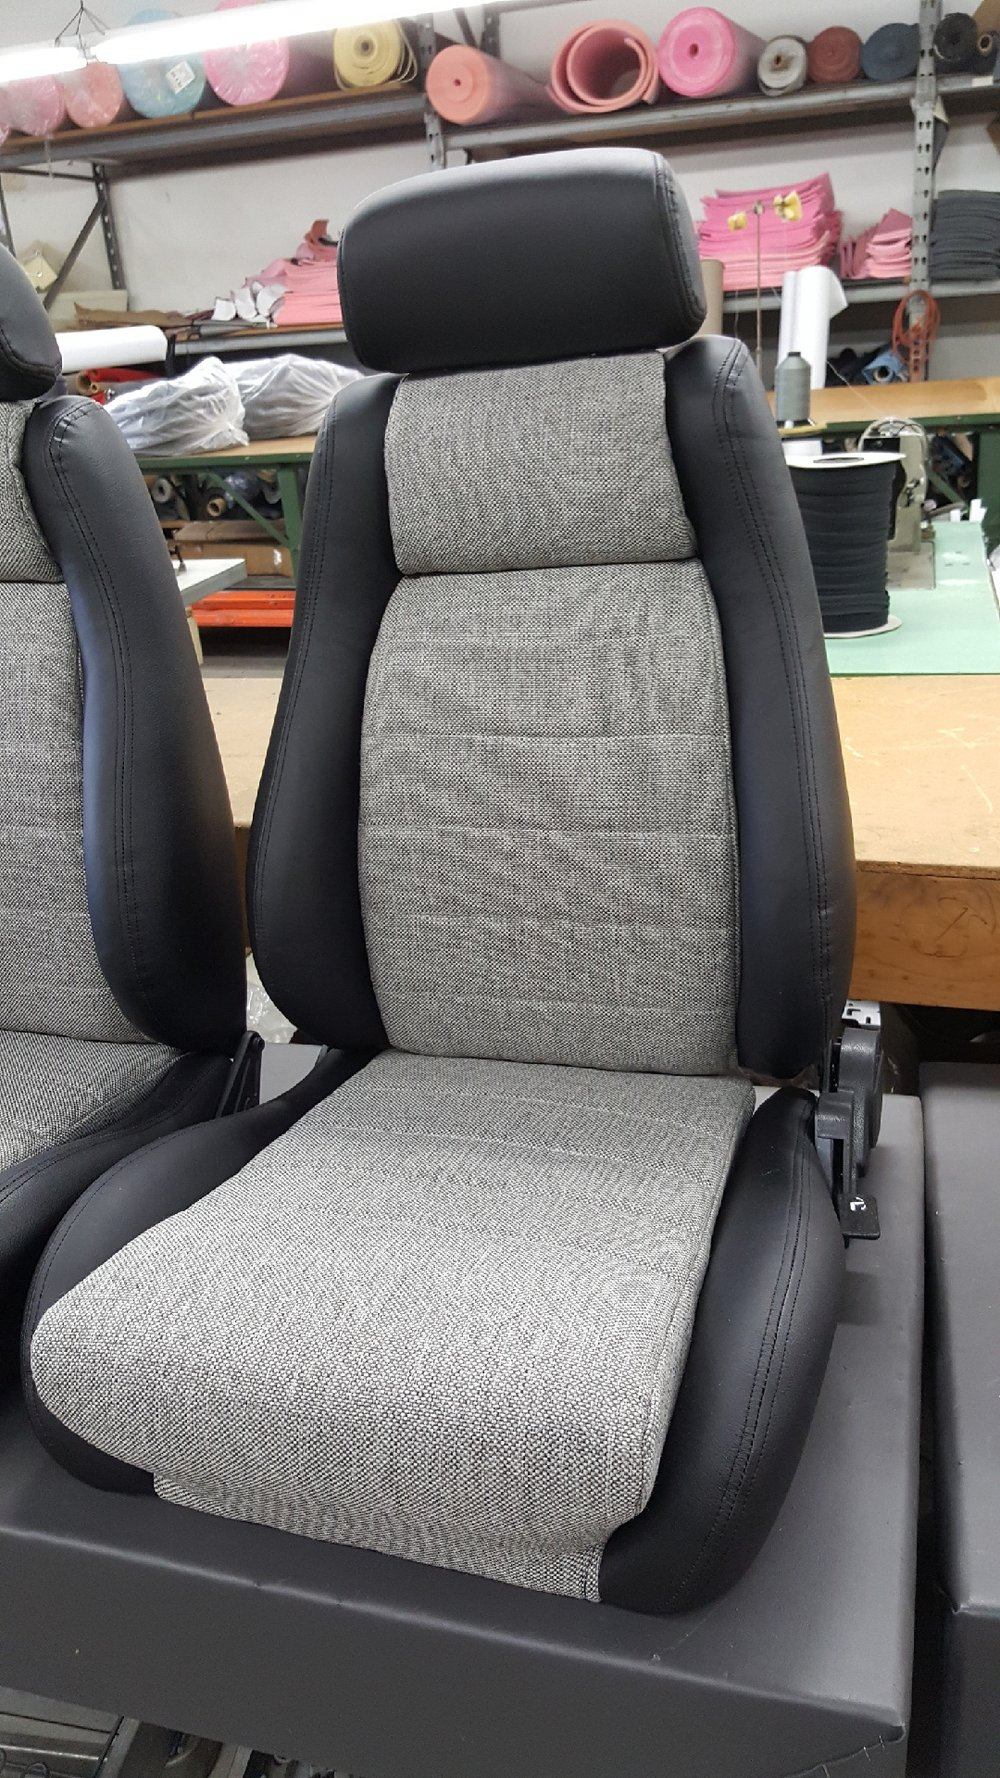 1970 Chevelle Seats Plus Rear Seat Cover — Cerullo Seats